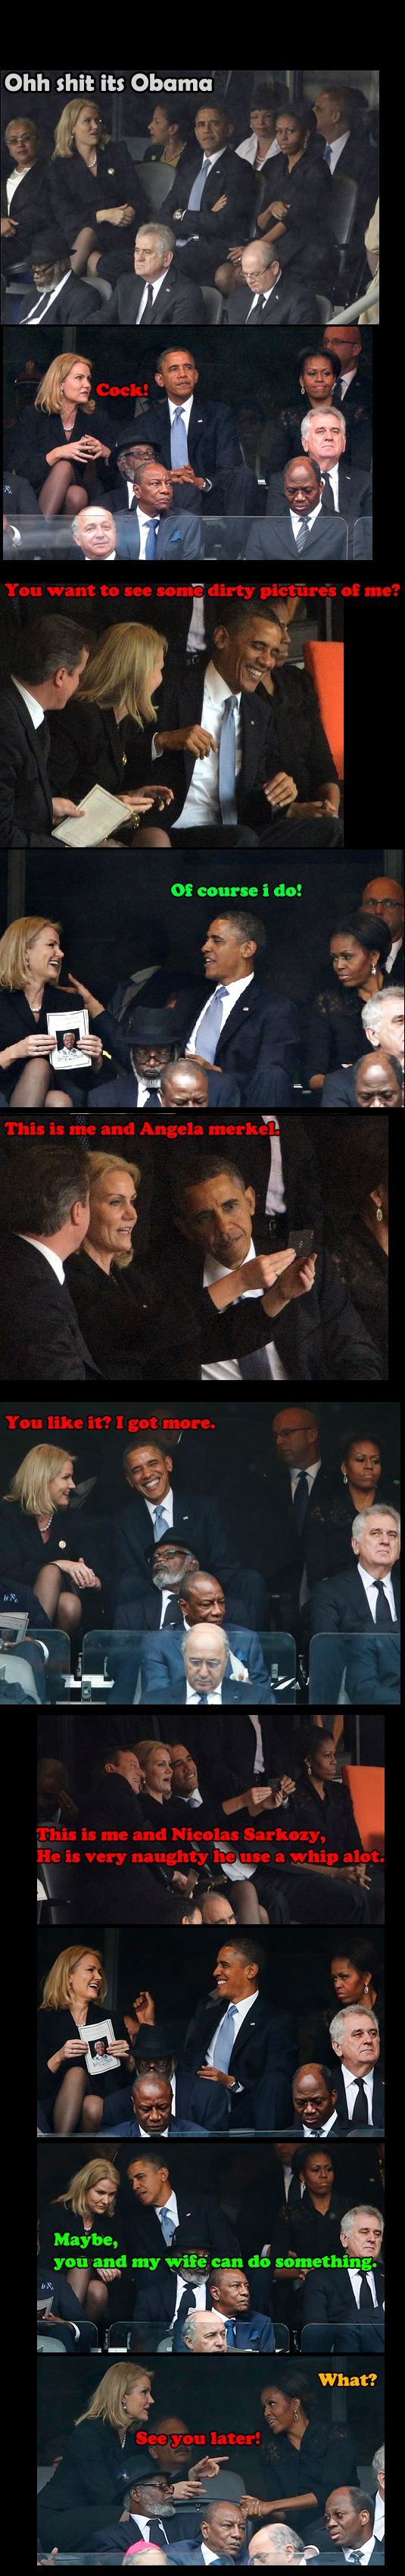 Helle & Obama, What really happened!. Just made it, Sorry about spelling... guess she was asking for some Obama Care